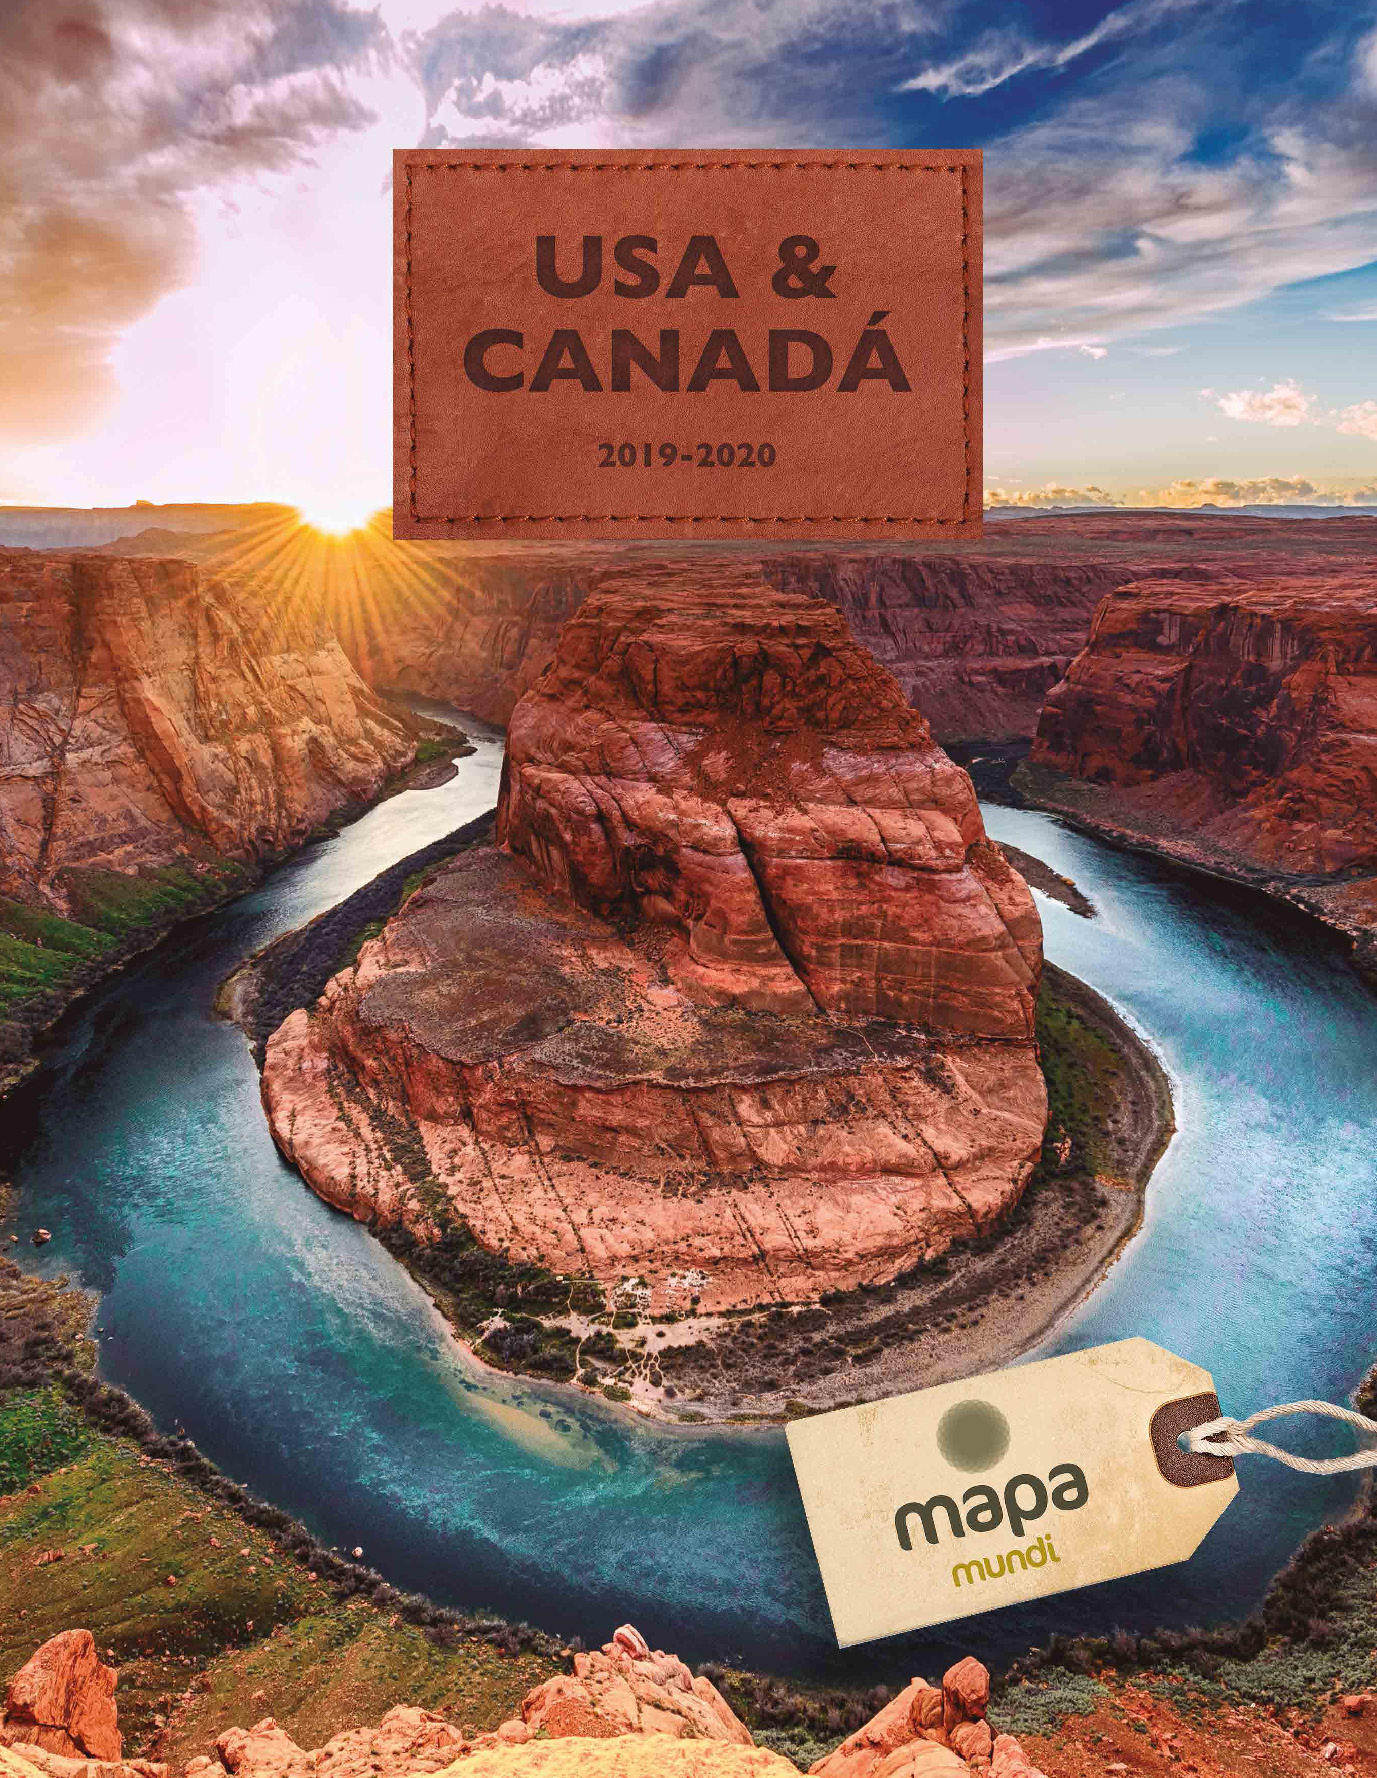 Catalogo Mapa Tours USA y Canada 2019-2020